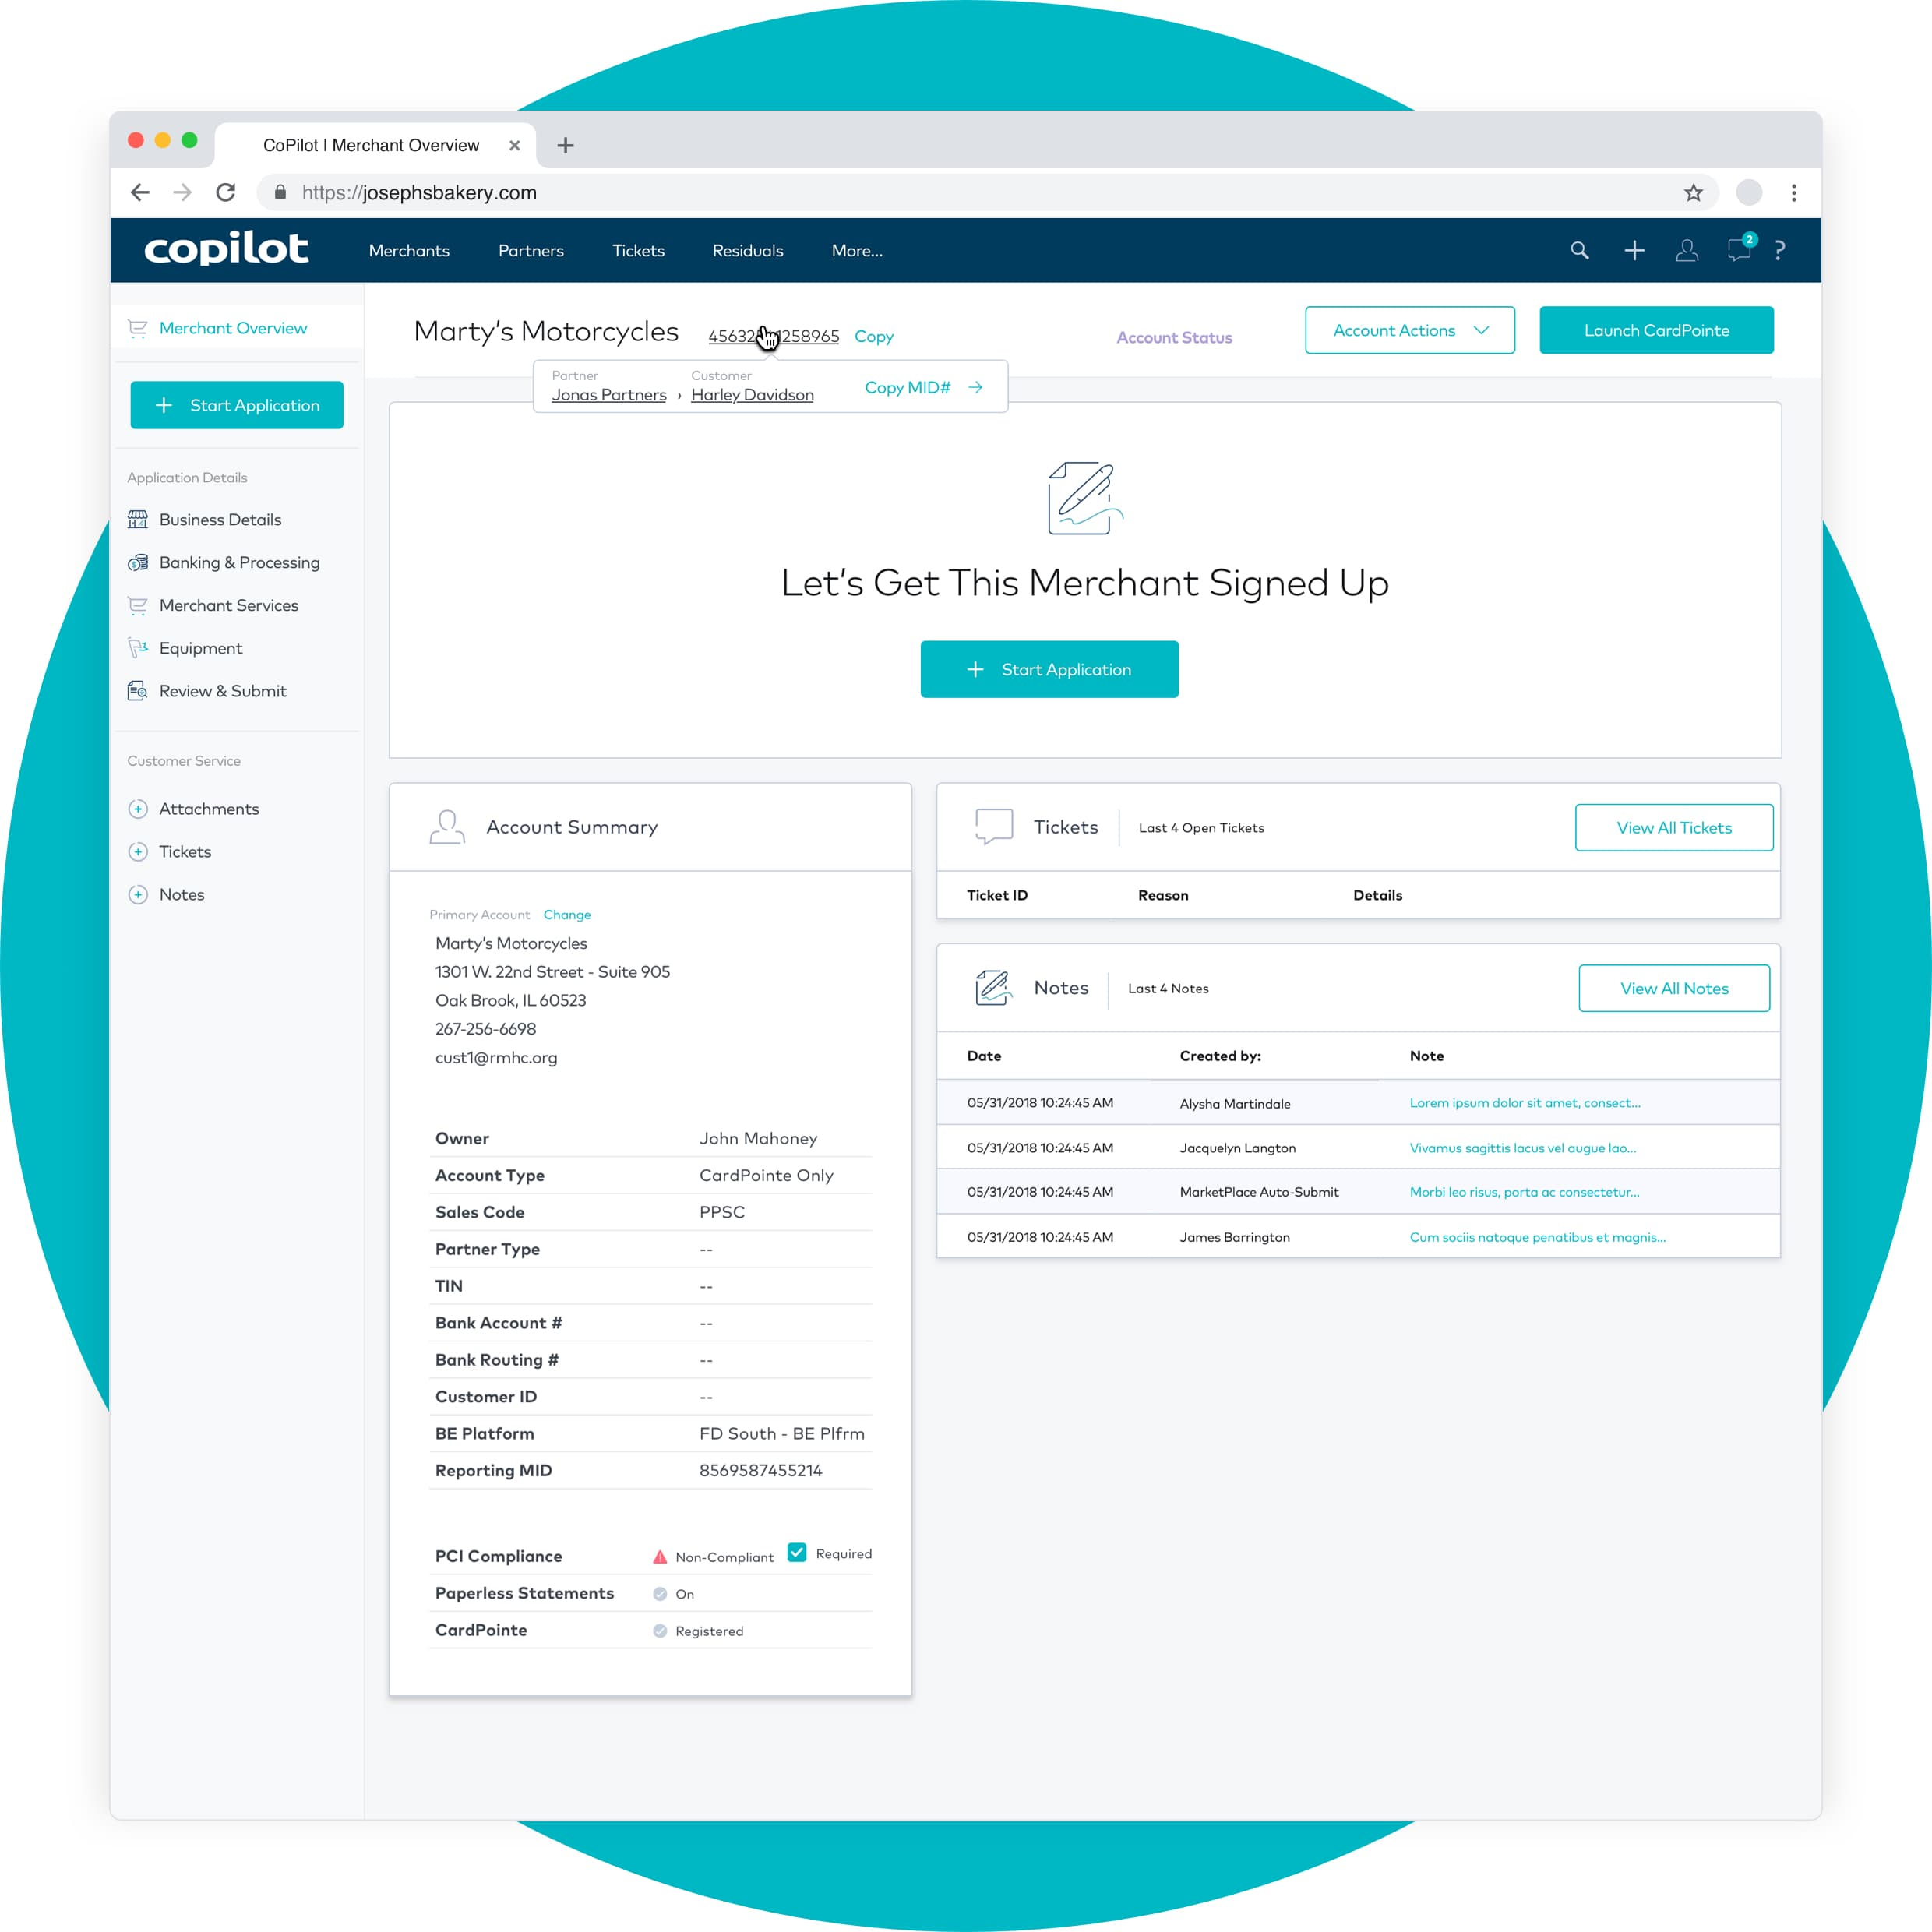 King Design CardConnect CoPilot Web App Webapp Merchant Overview Dashboard